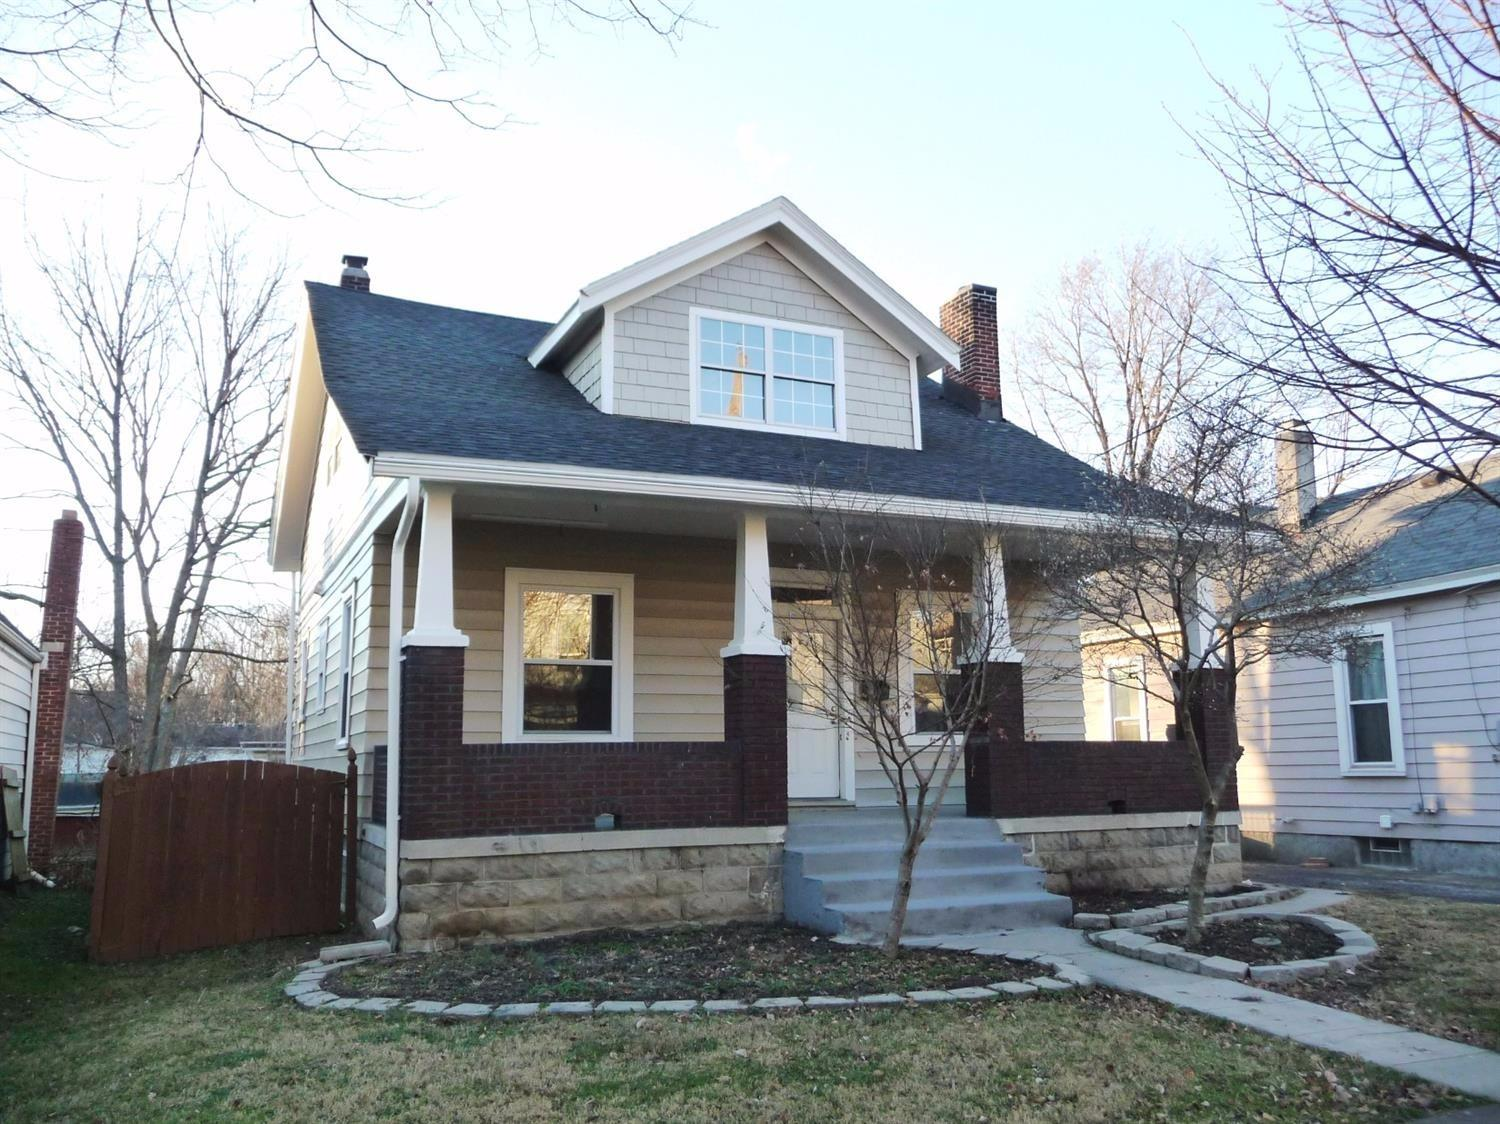 347 Williams St Lockland, OH